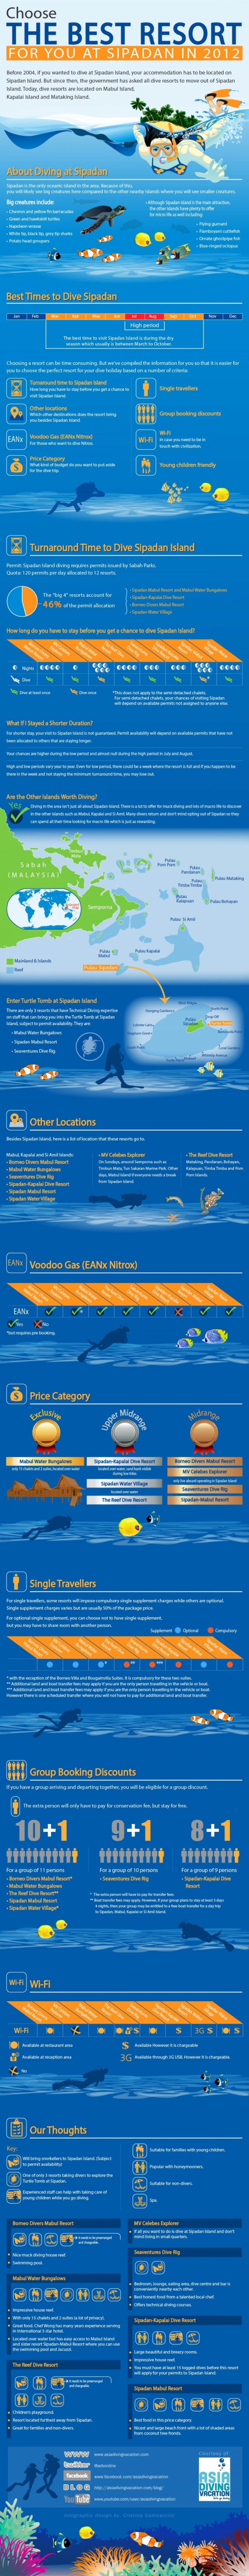 Choose the best resort for you at Sipadan 2012 Infographic